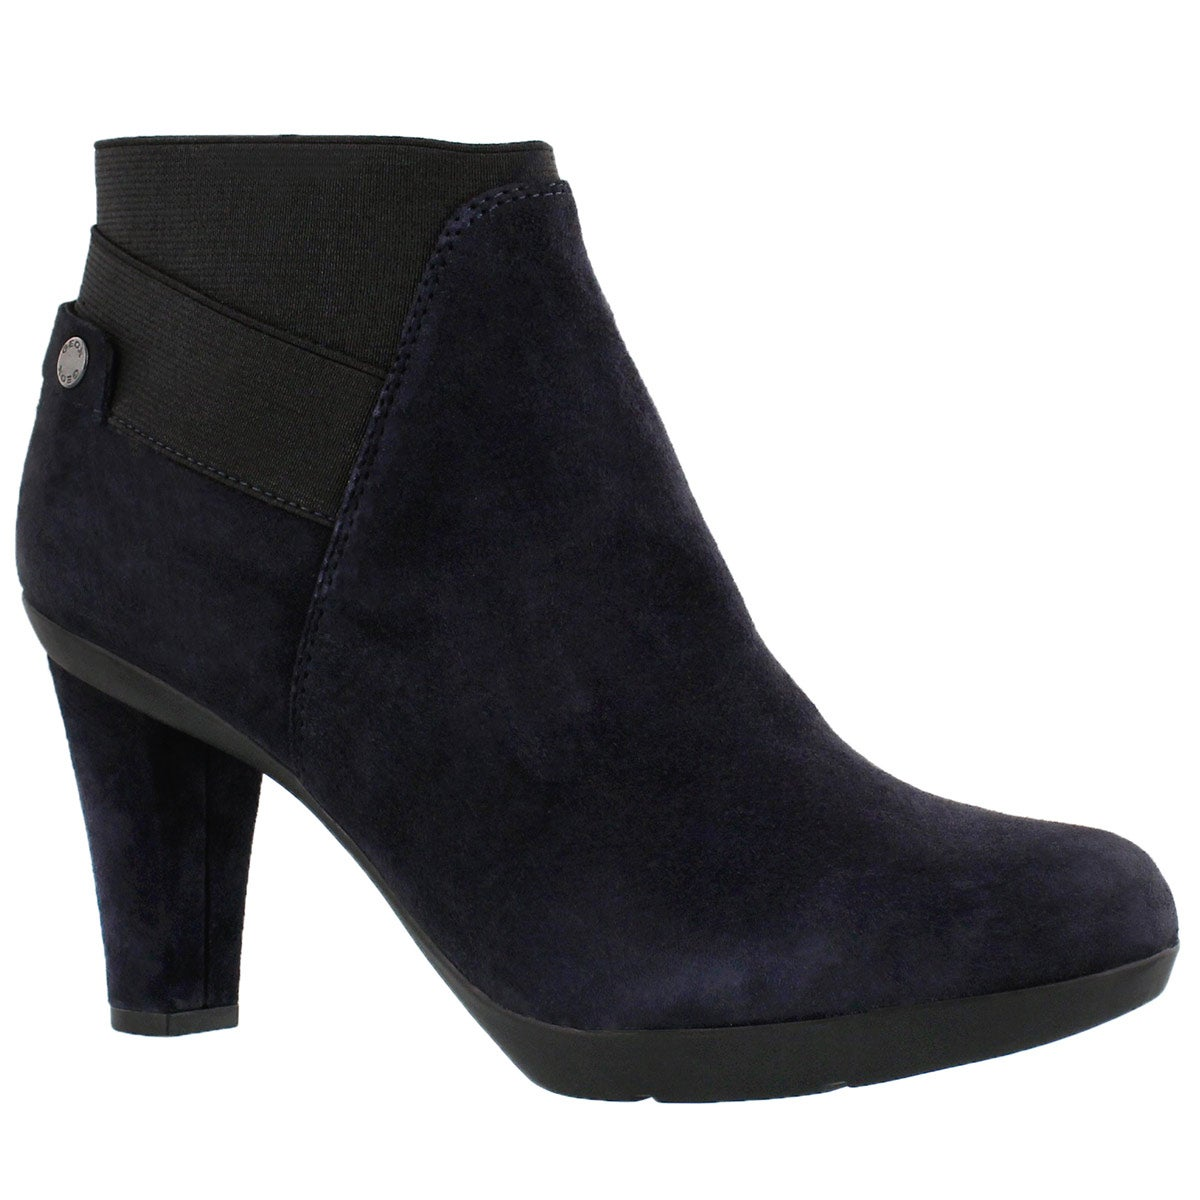 Women's INSPIRATION STIV navy suede ankle boots